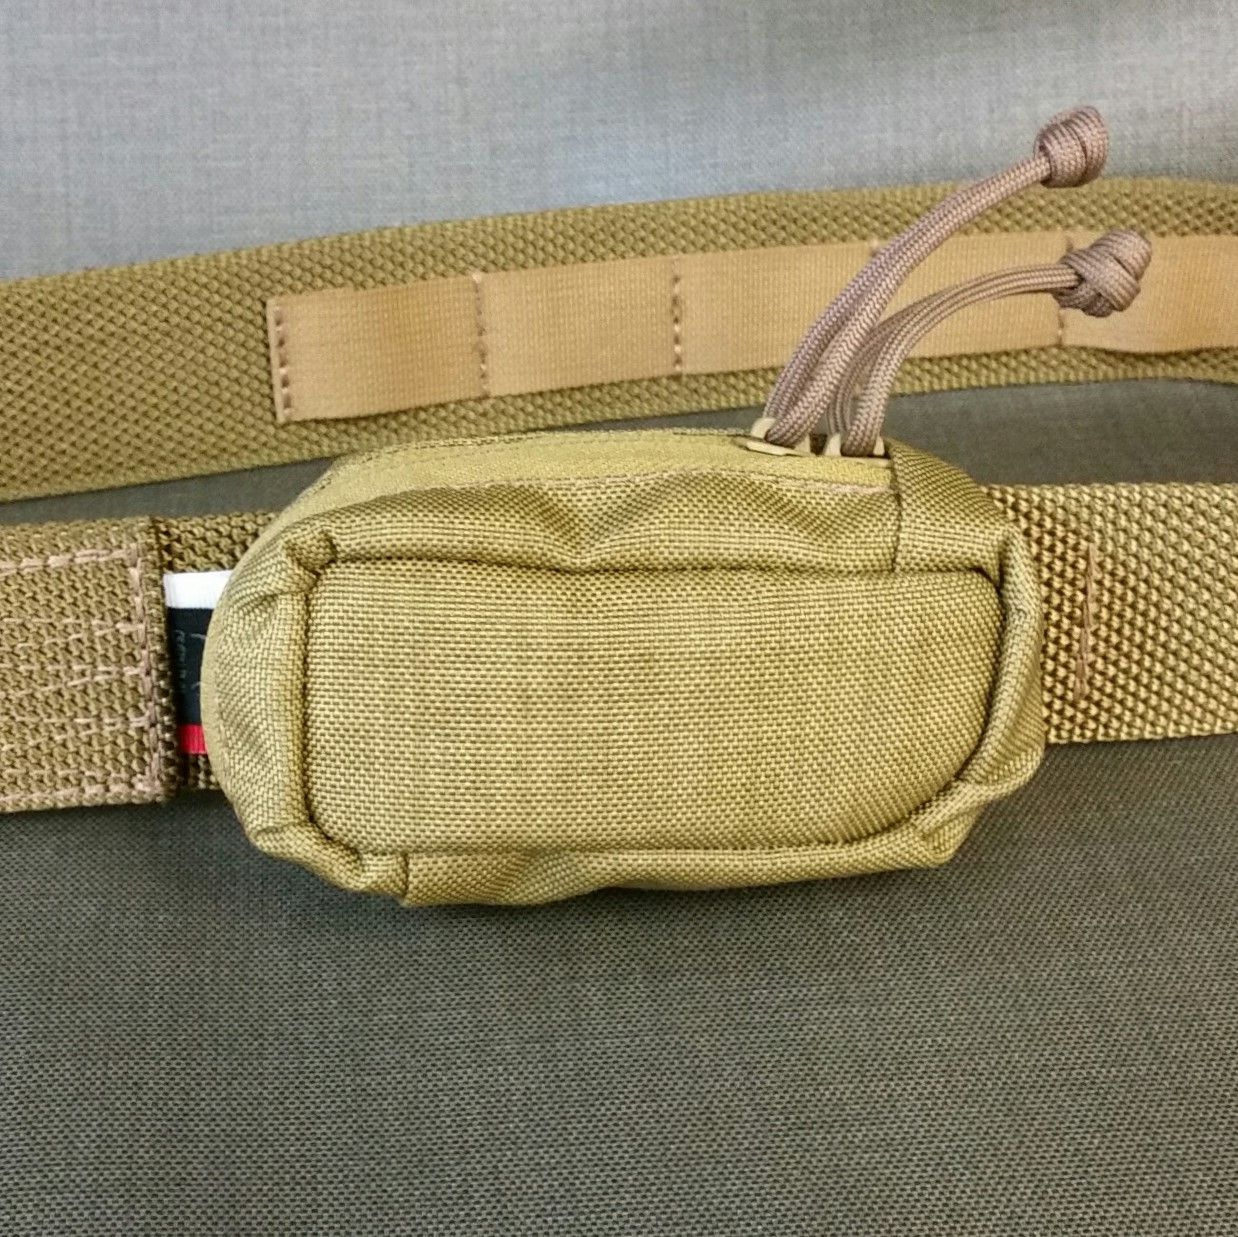 Cargo pouch 2x1 Slim belt type +35pln